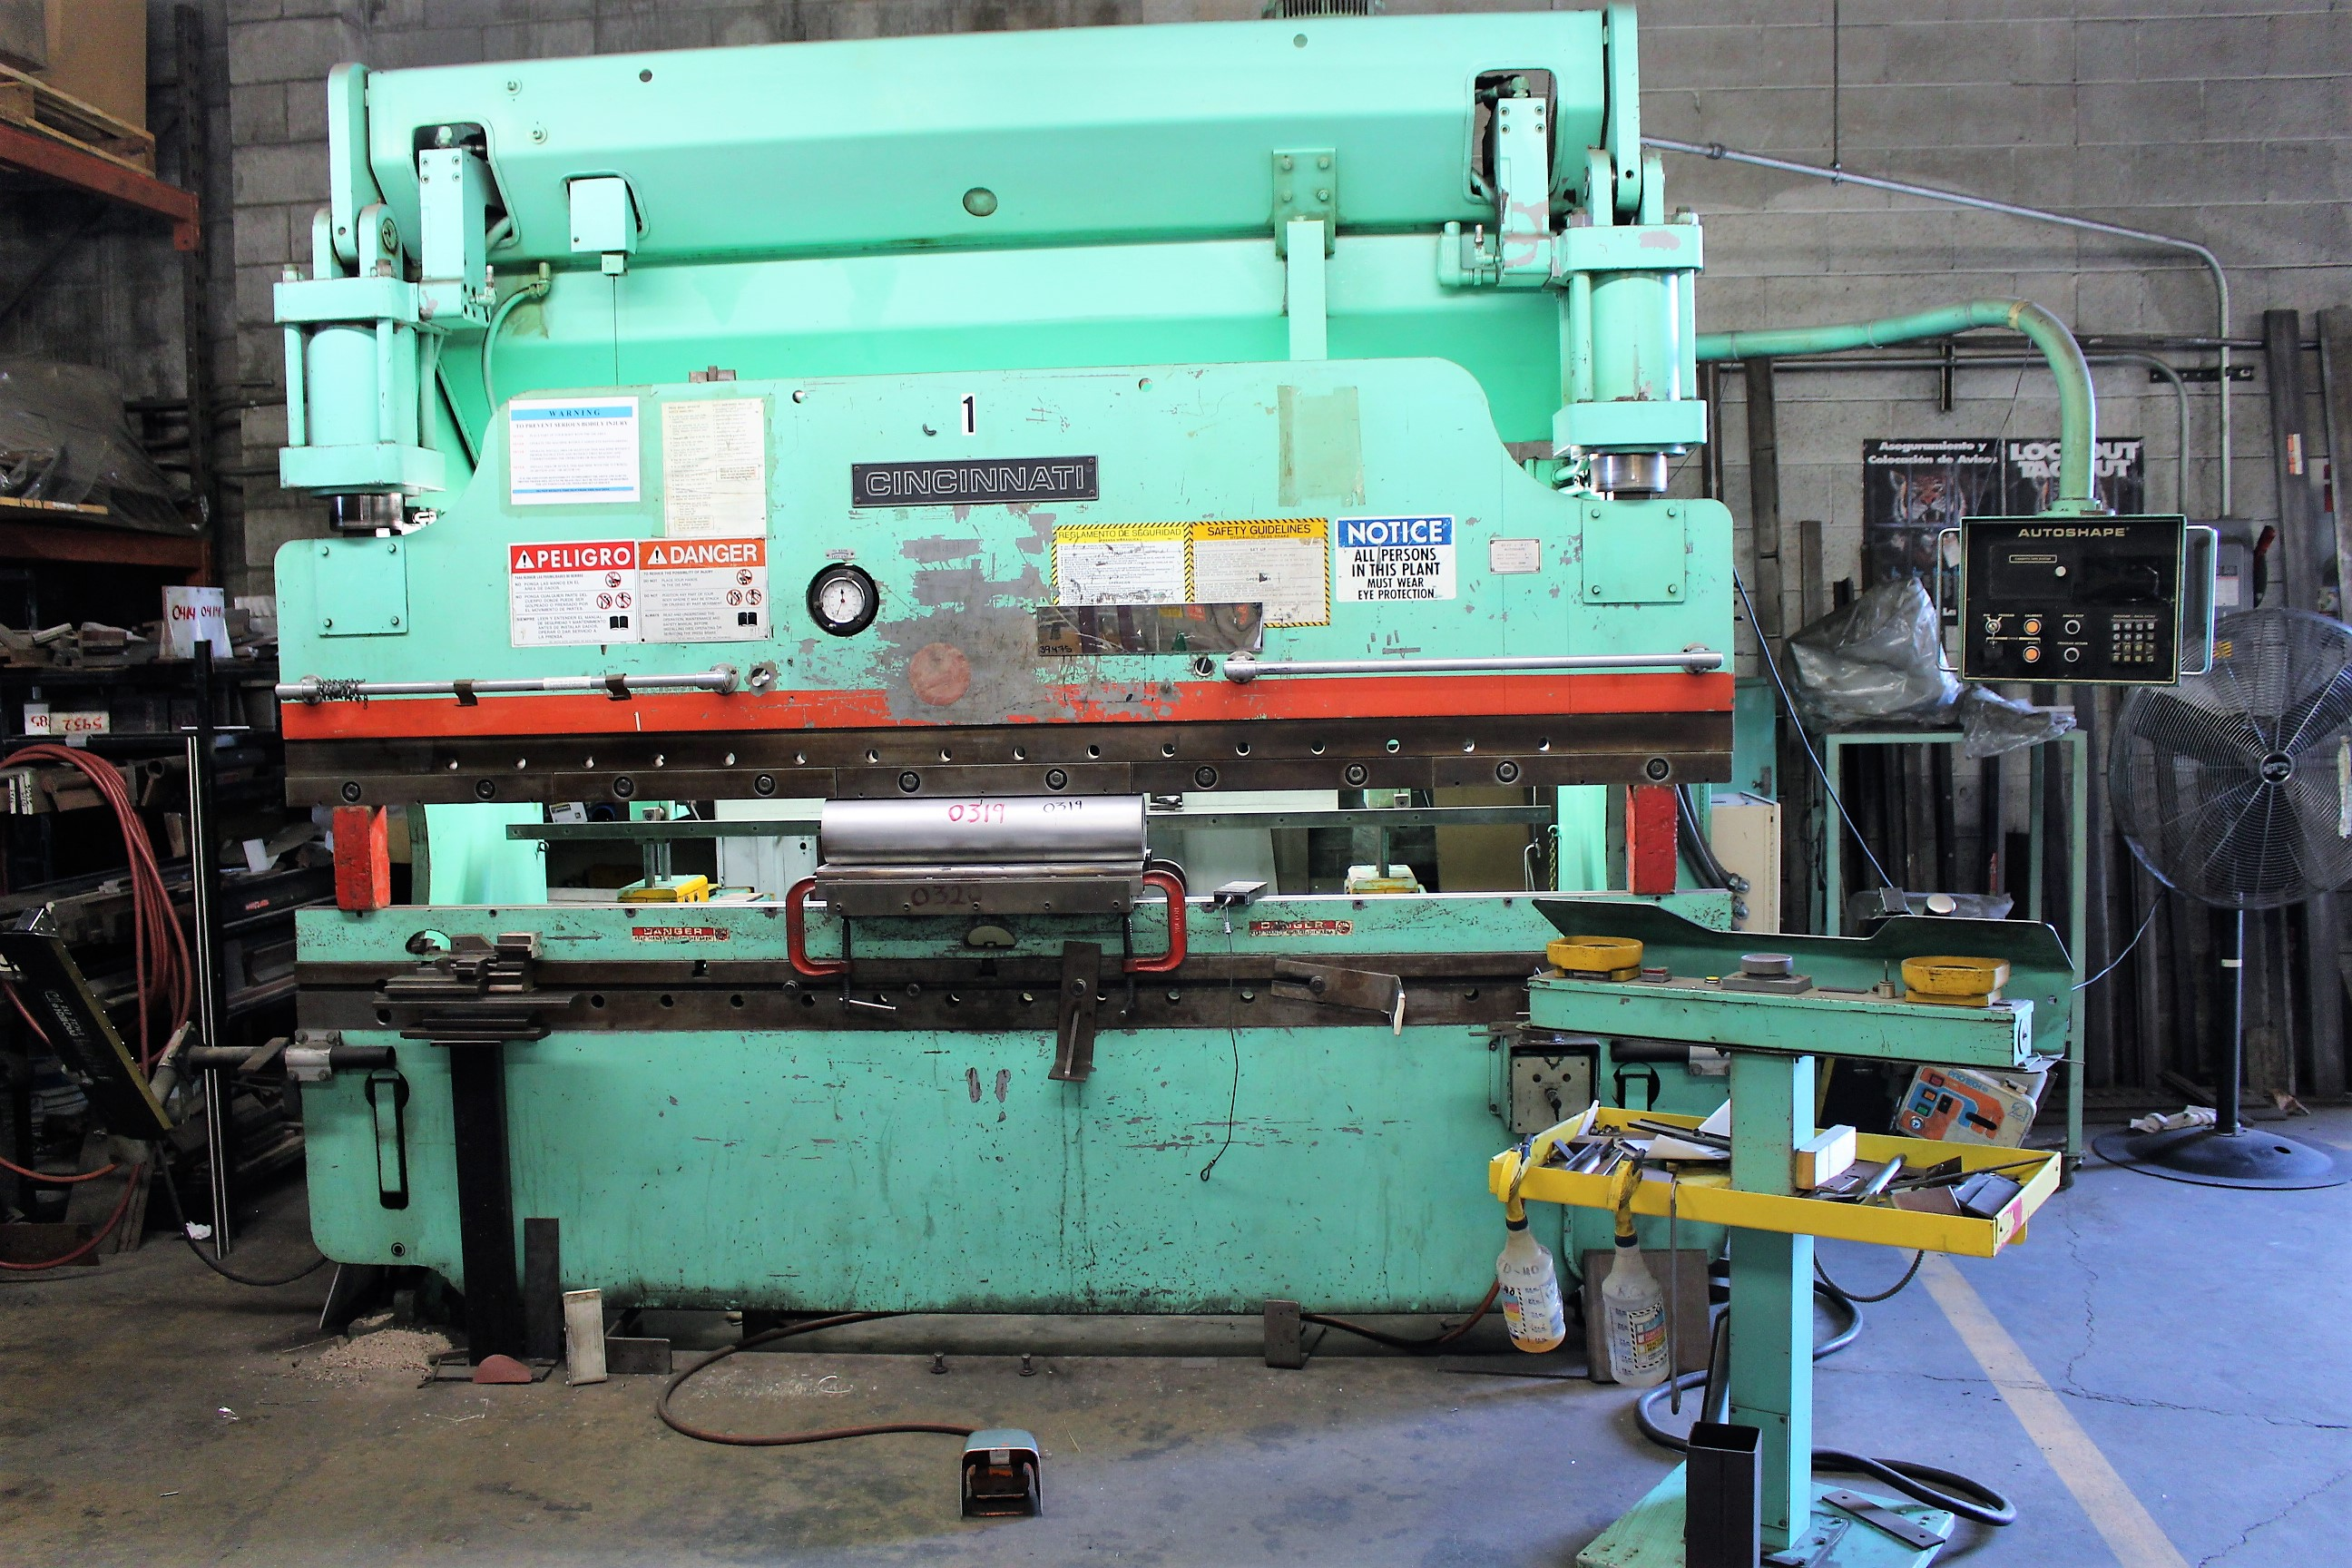 PRESS BRAKES, SHEARS, PUNCH PRESSES,  TUBE BENDERS, IRON WORKERS, SAWS, TIG/MIG WELDERS, POLISHERS, MACHINE SHOP, STAKE BED TRUCKS, FORKLIFTS